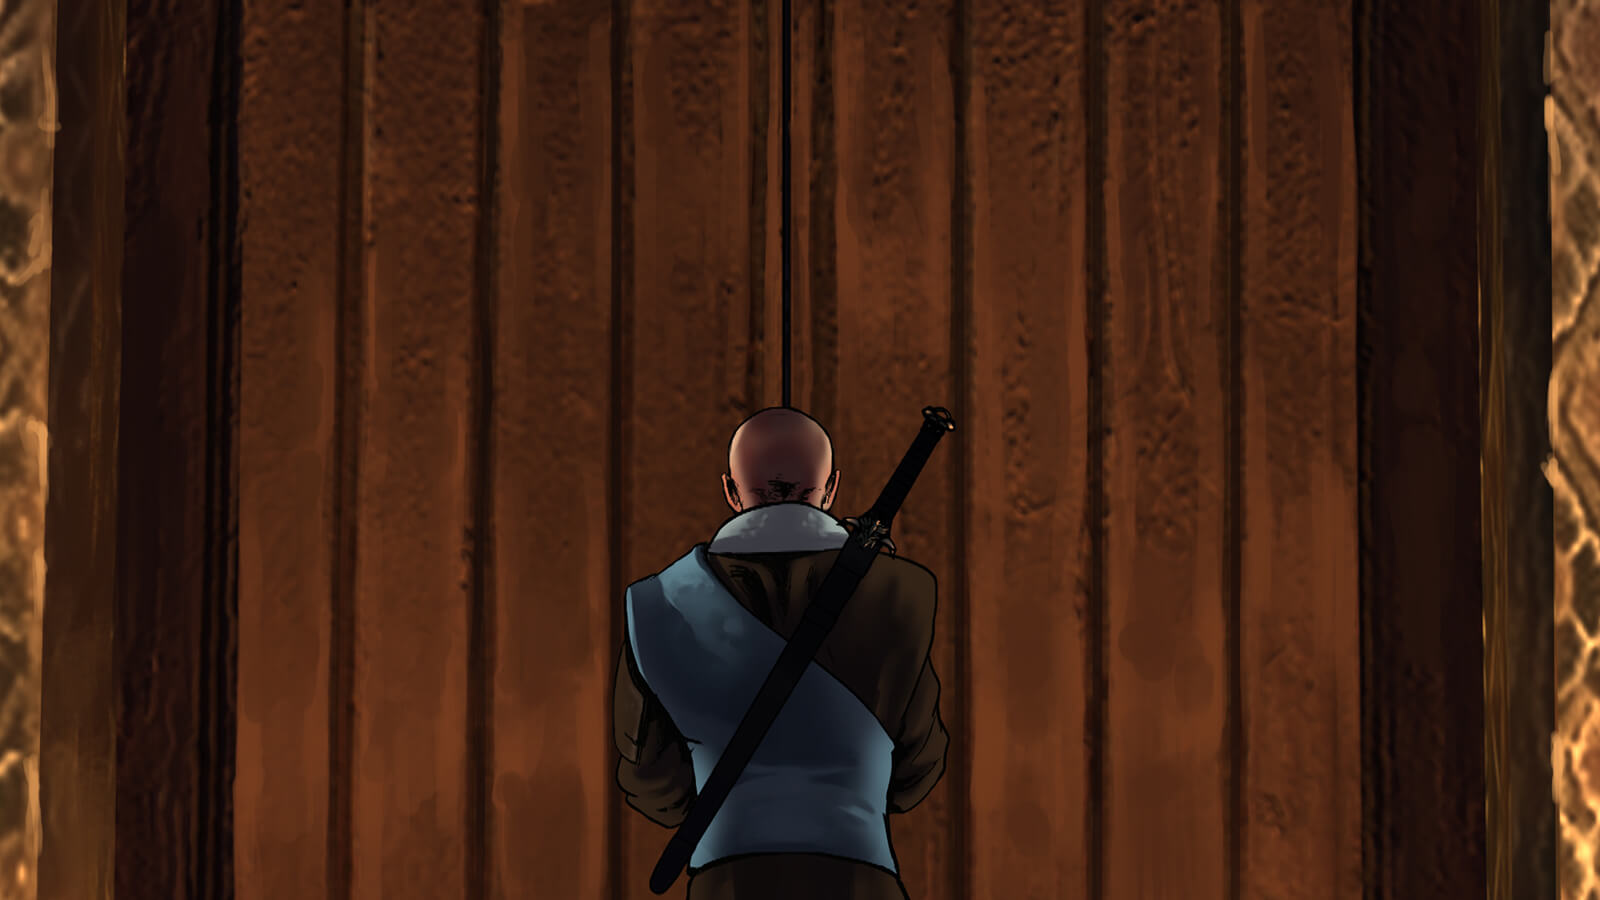 A bald man seen from behind with a sword slung over his back stands at a tall wooden door